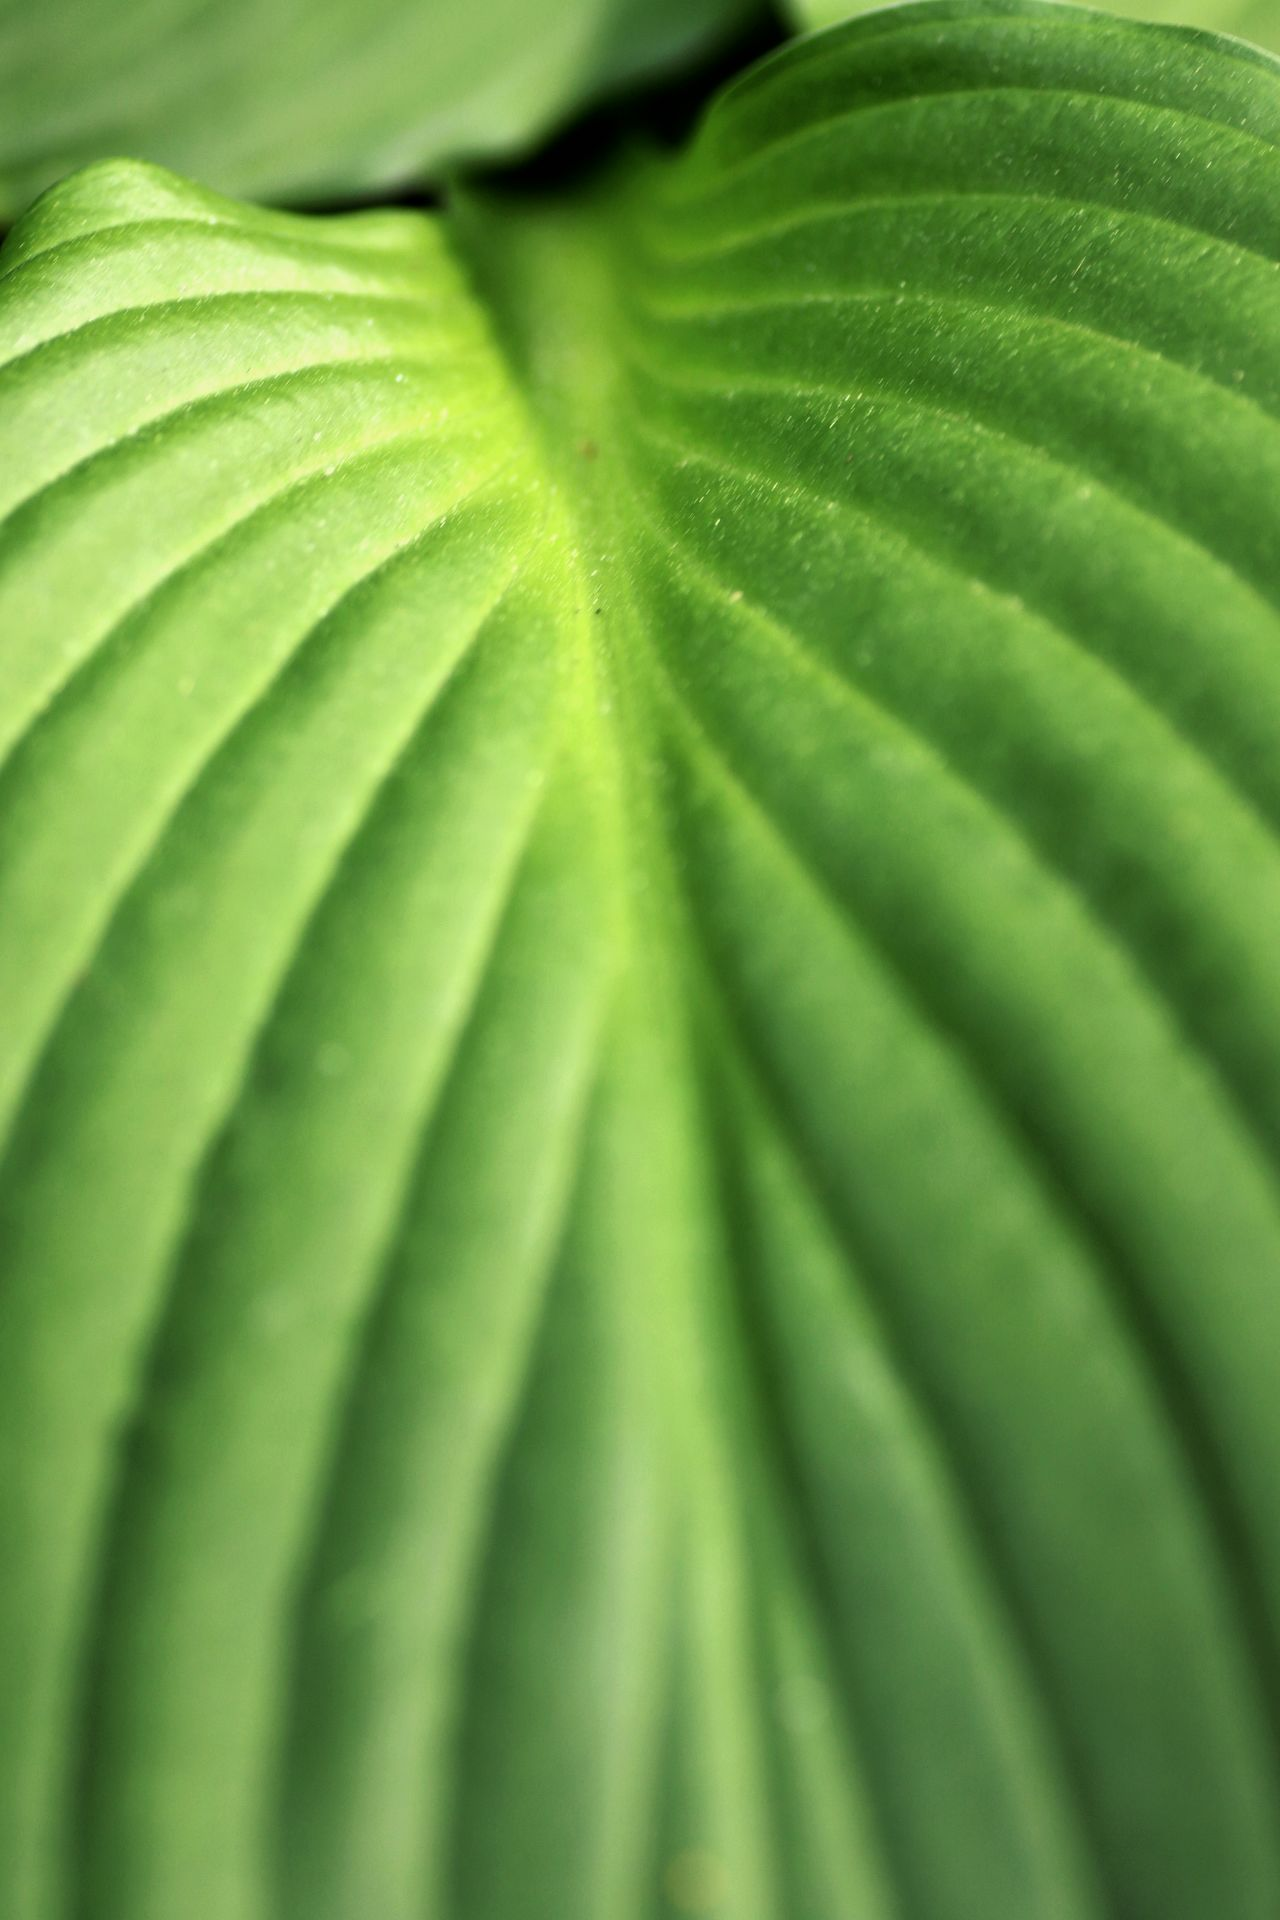 Backgrounds Beauty In Nature Close-up Day Freshness Full Frame Green Color Growth Leaf Nature No People Outdoors Plant